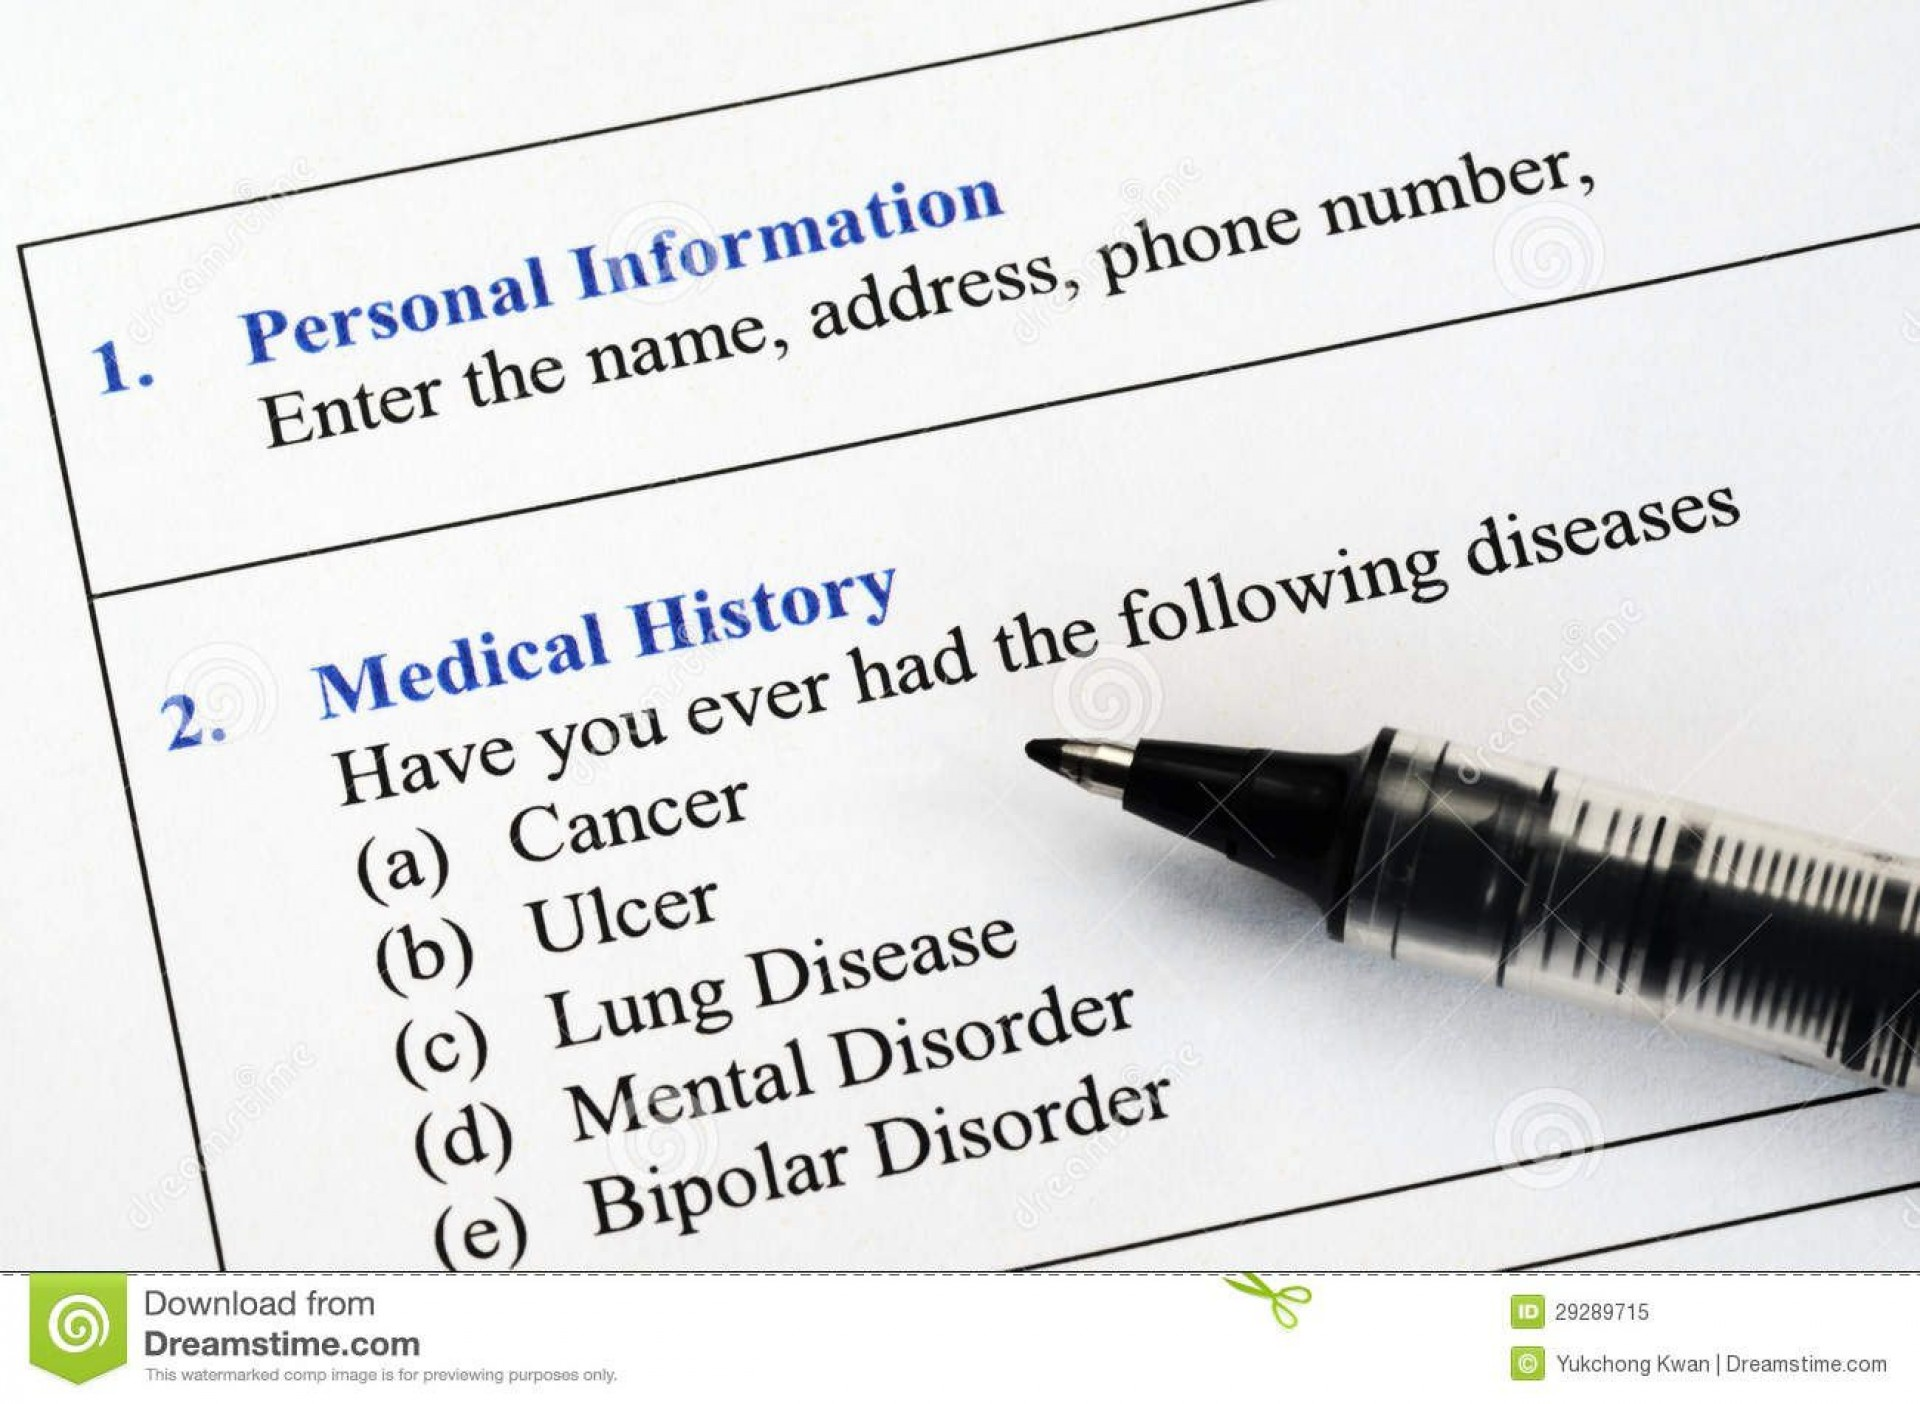 005 Wondrou Free Personal Medical History Template High Definition  Printable Form1920